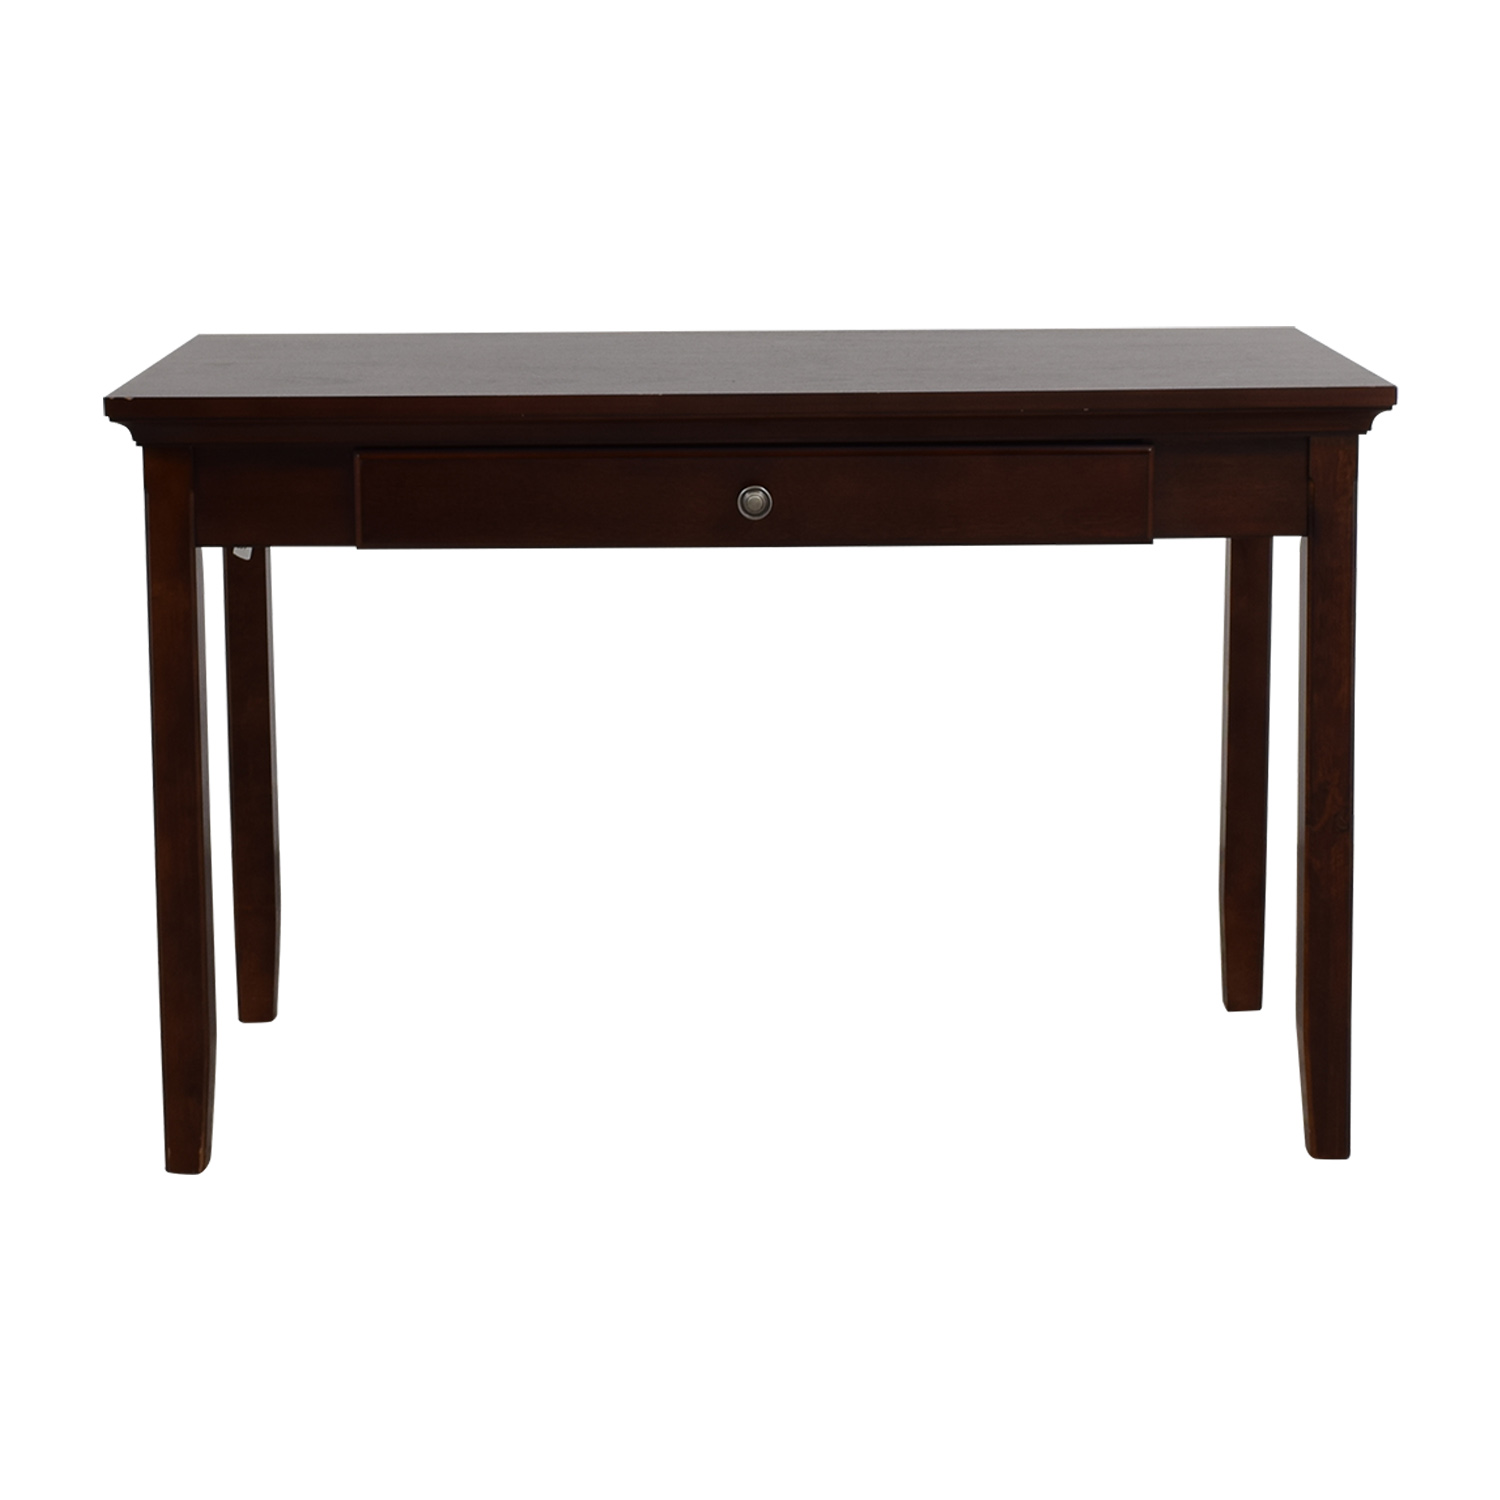 off threshold avington desk with keyboard tray tables target threshod accent table lamps that run batteries cylinder lamp modern front porch bench bath and beyond gift registry